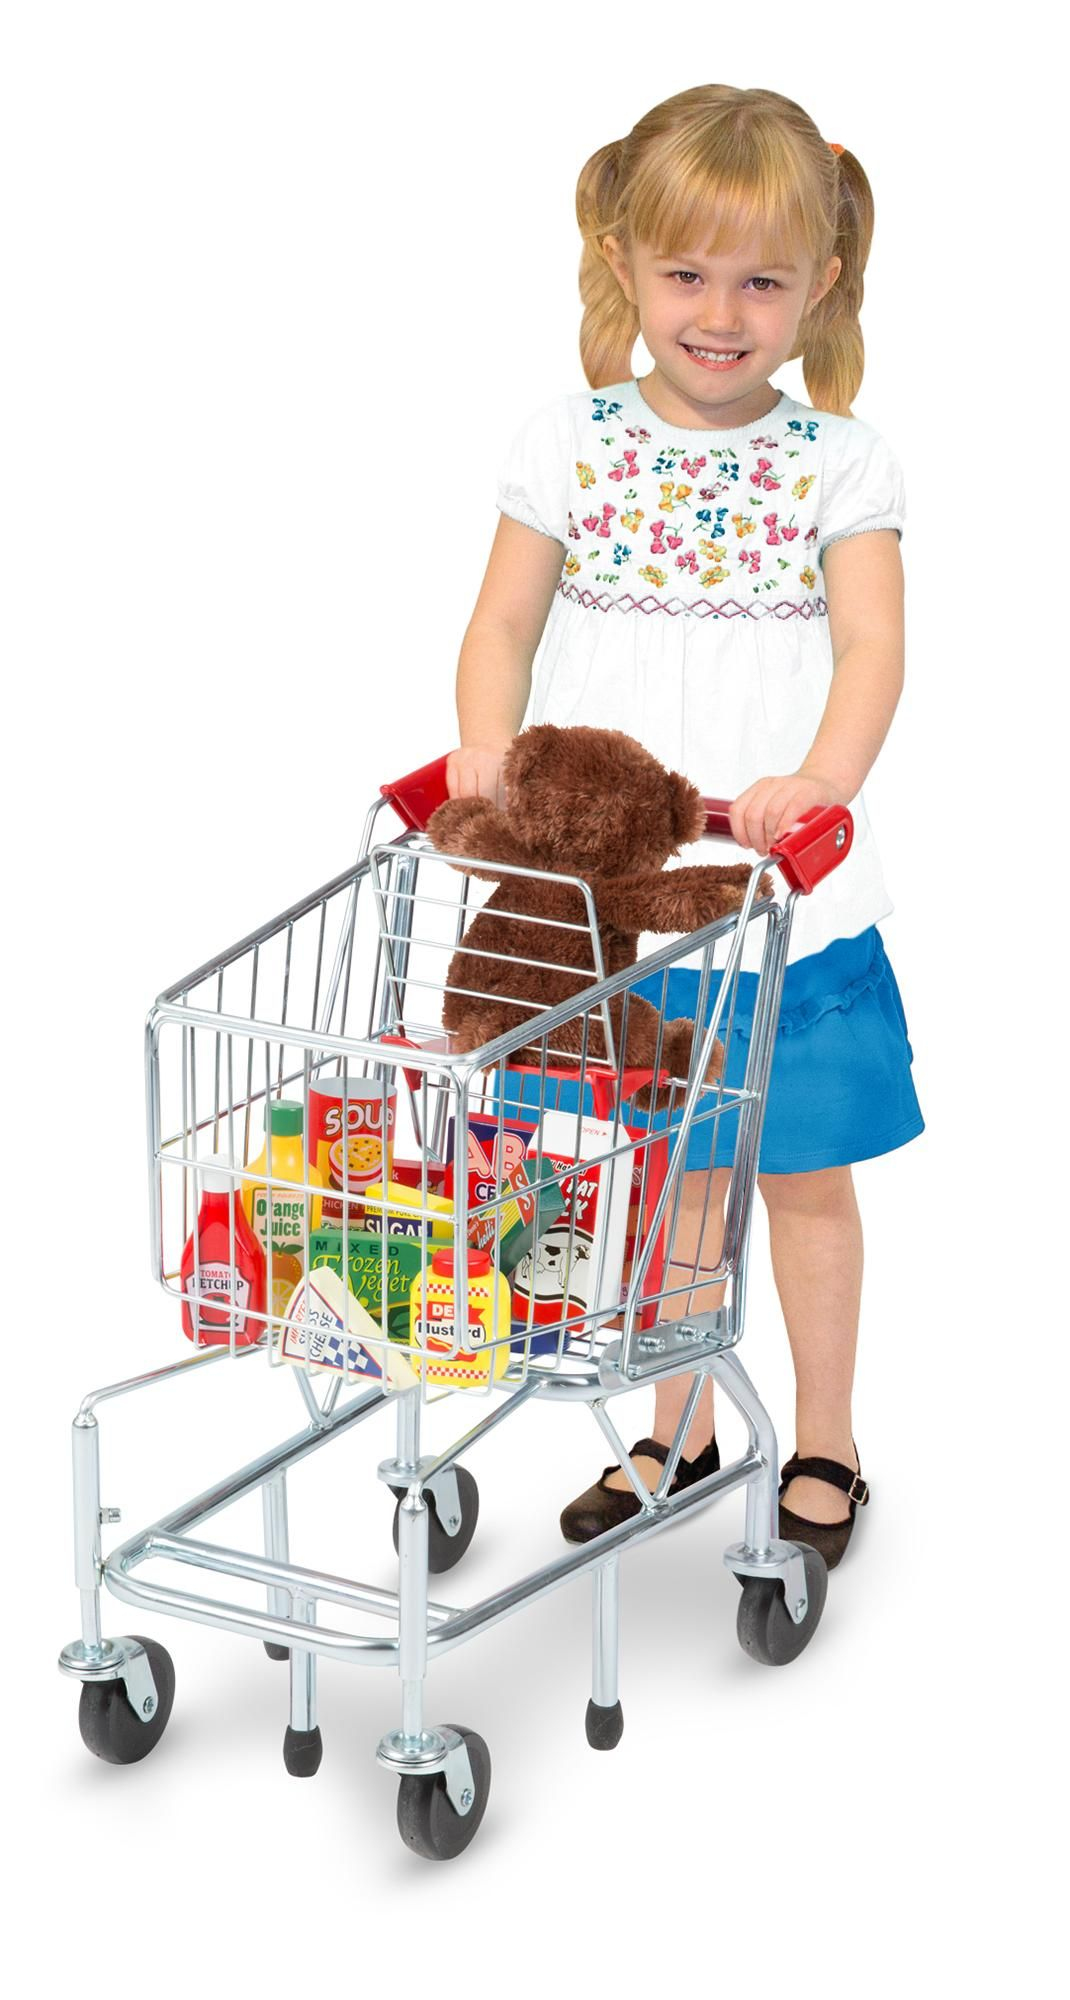 Toy Shopping Cart...but looks real...real size...cool gift